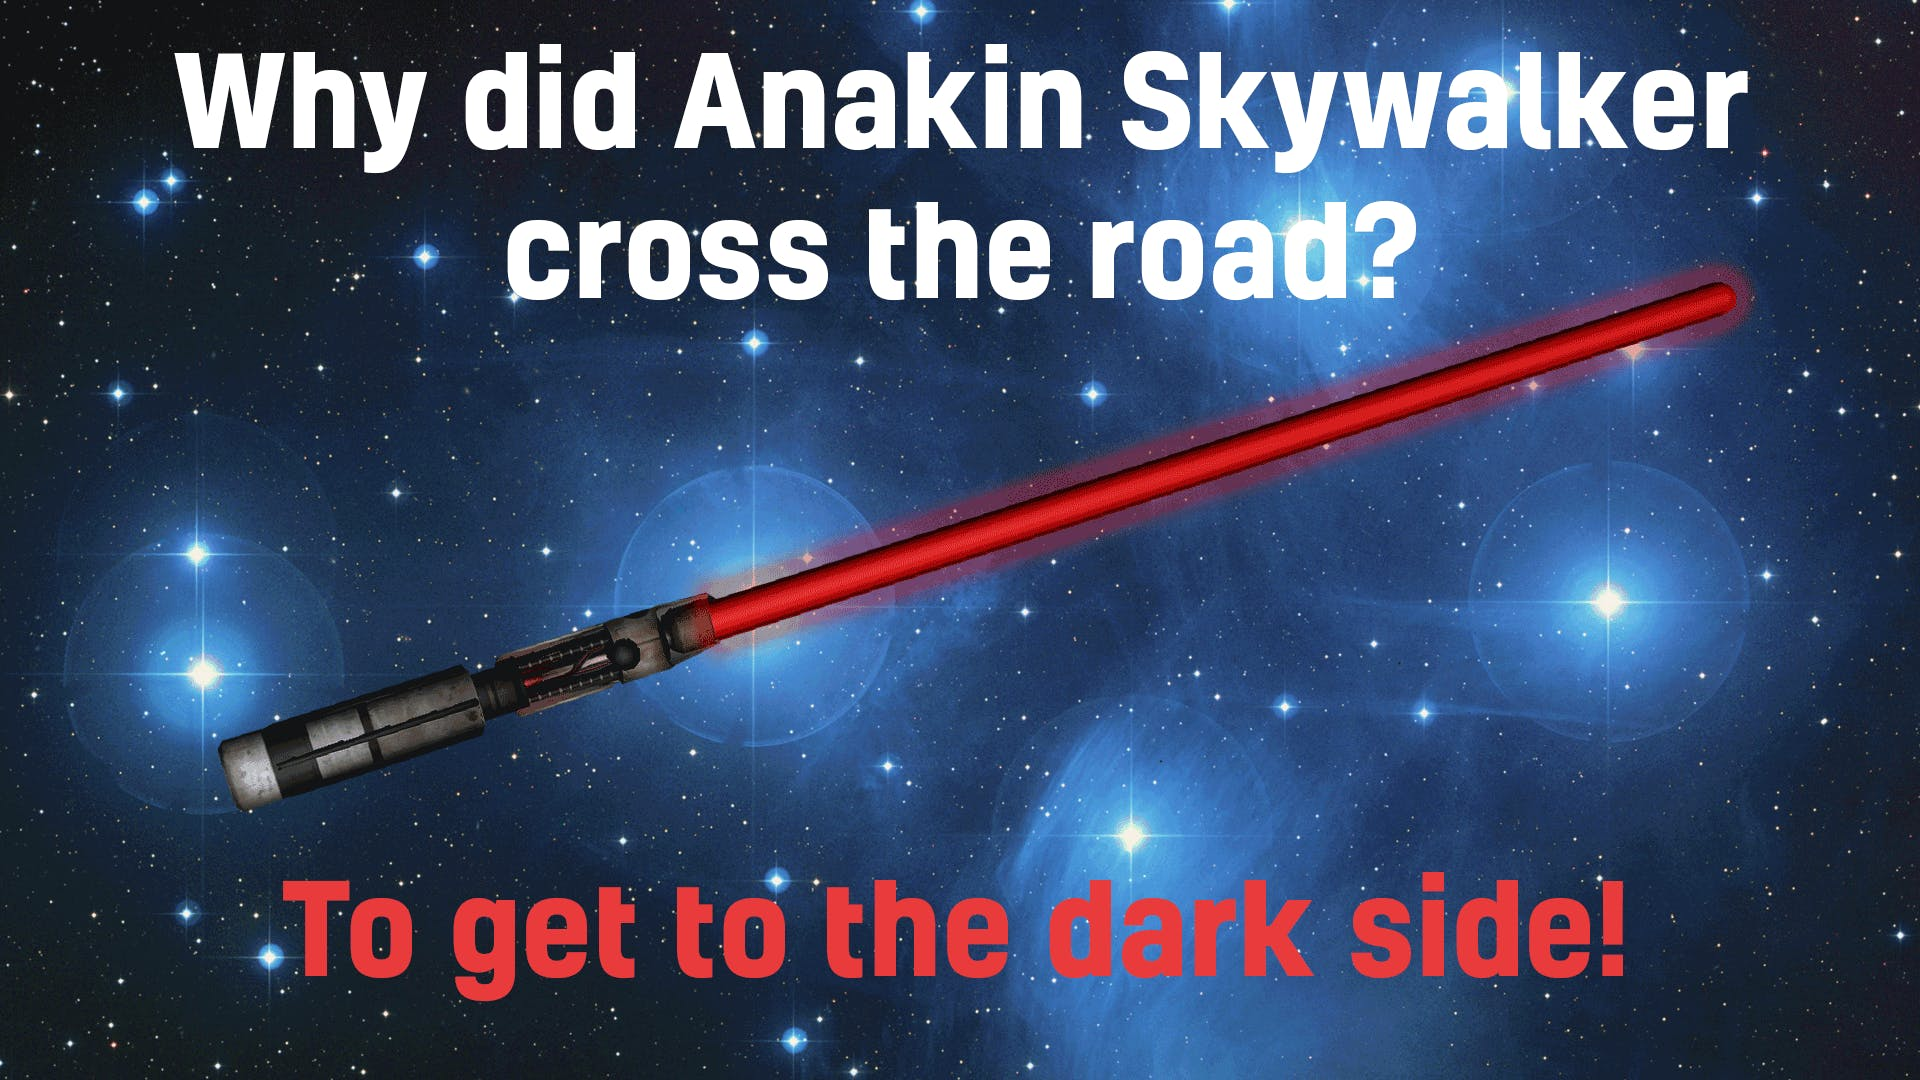 Why did Anakin Skywalker cross the road?